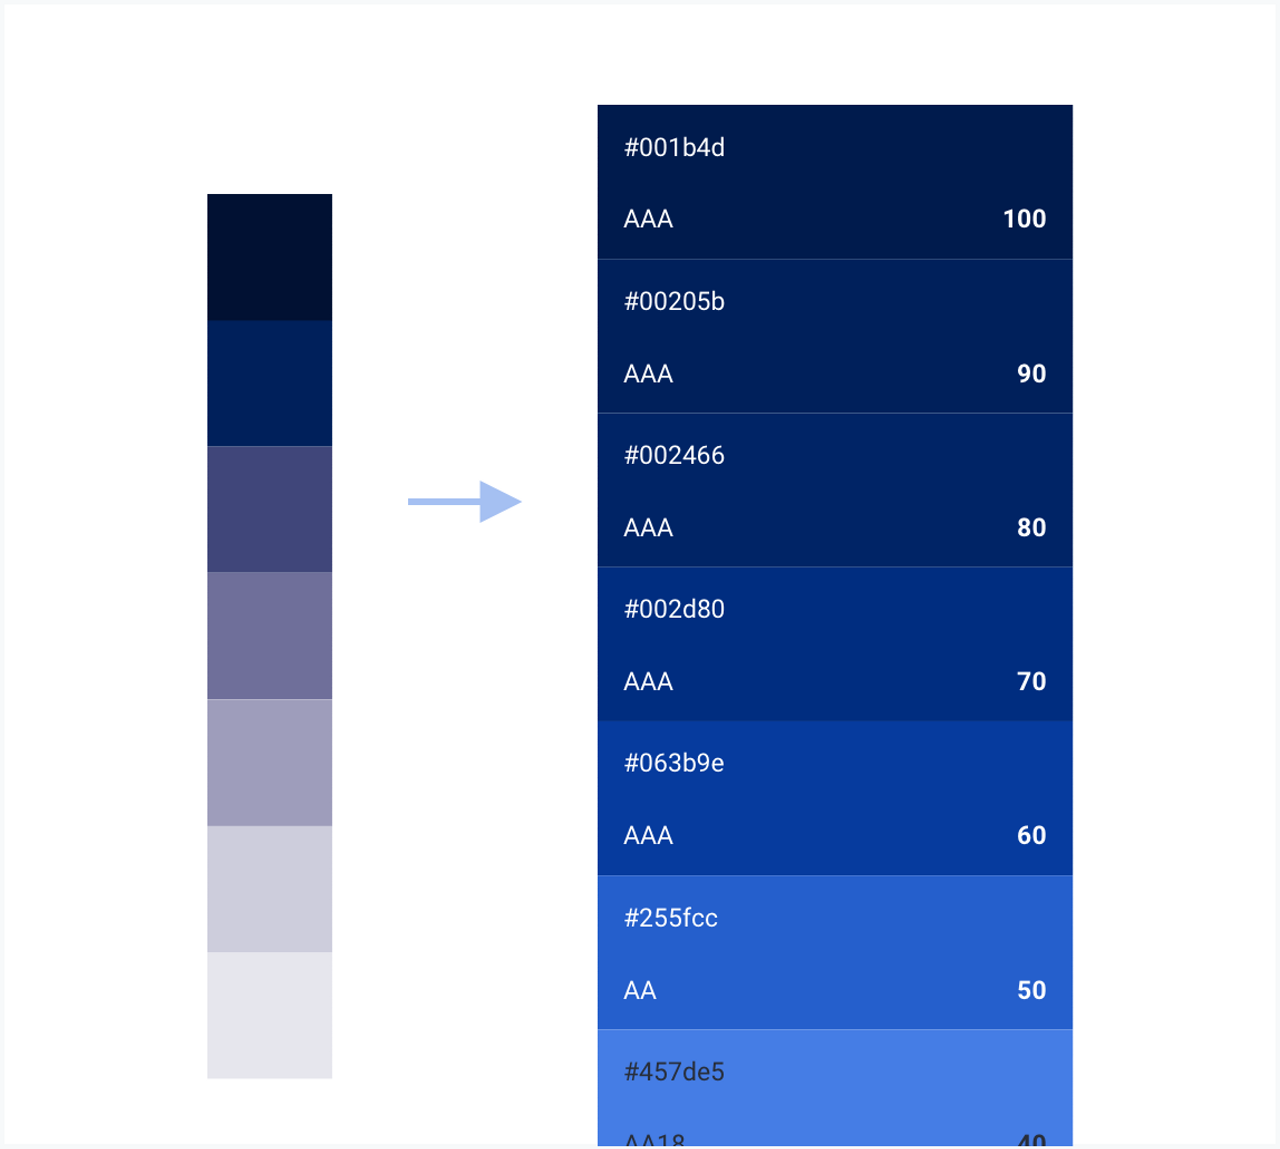 Picture that presents the primary colour palettes. The V.0.5 compared to the new one improved including accessibility standards. The new palette also shows the accessibility level and the hex code for each shade.